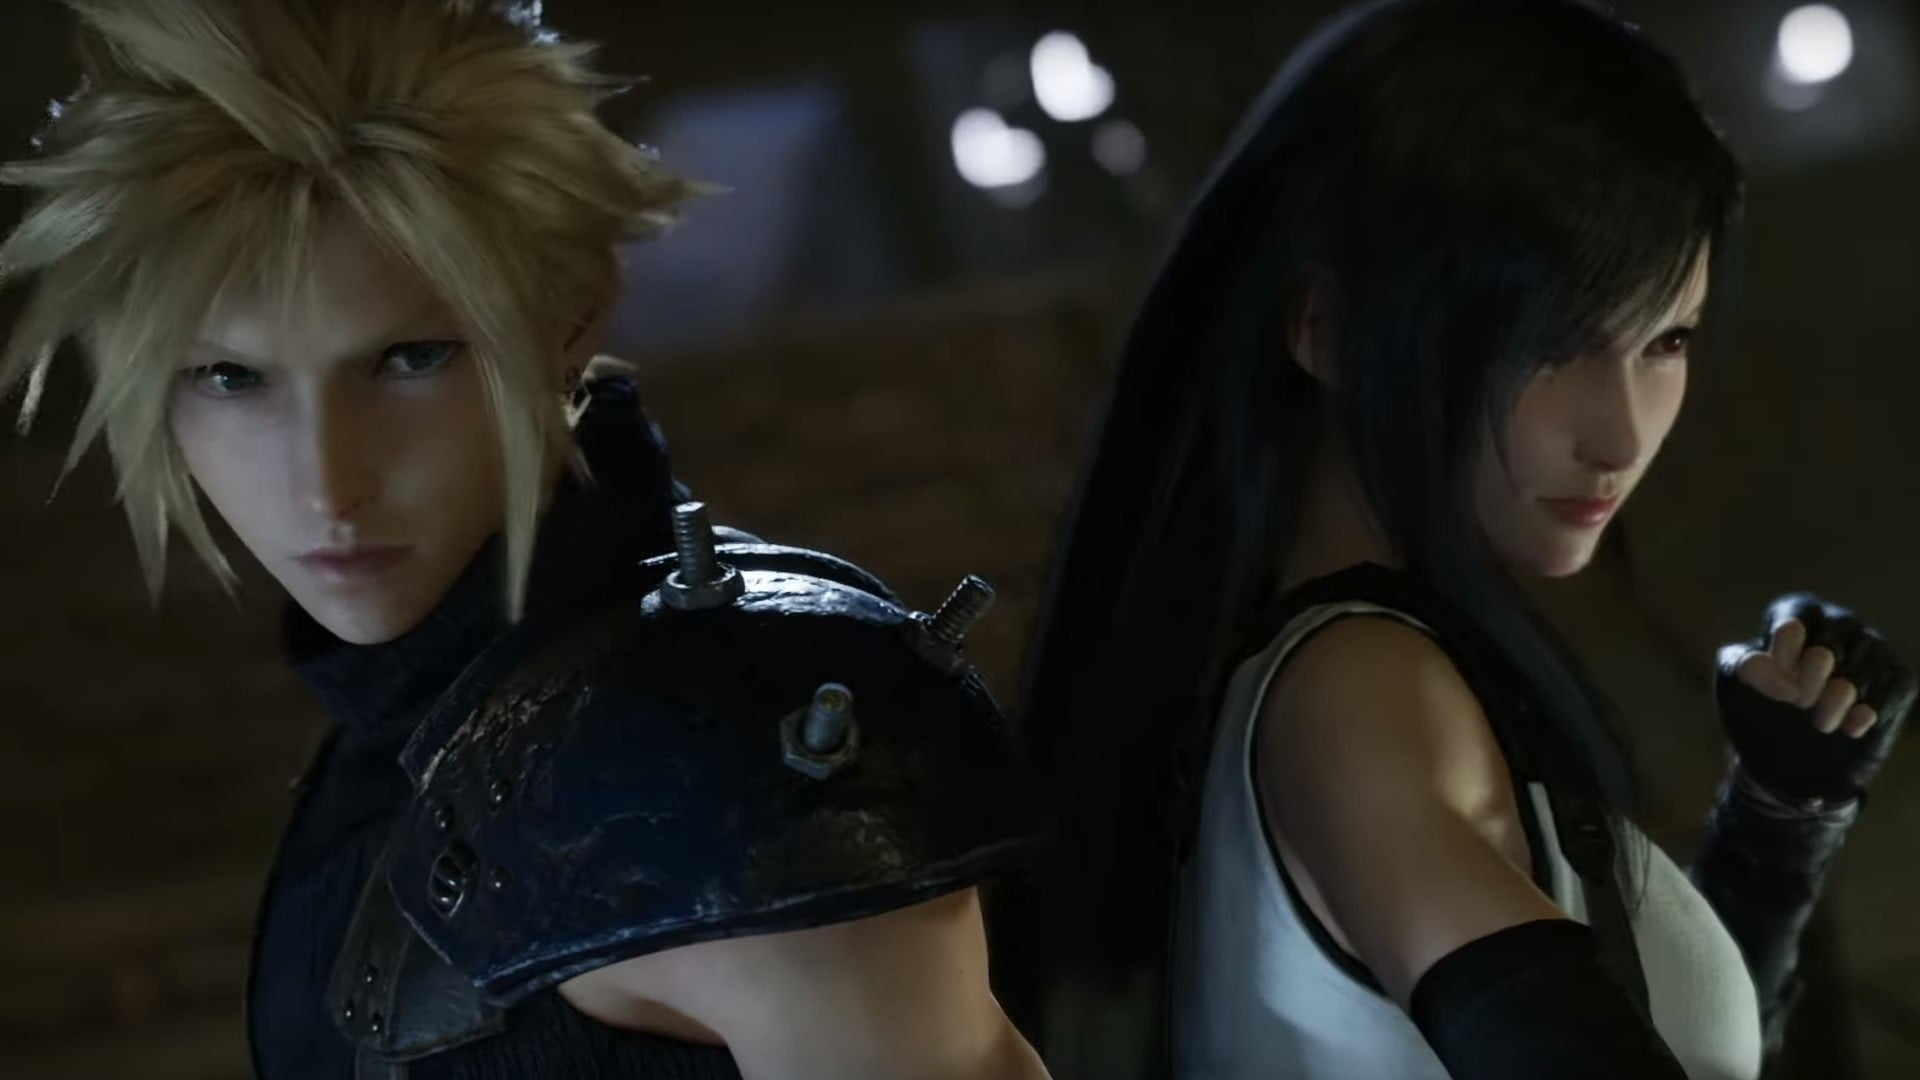 Final Fantasy 7 Remakes Combat System Explained During E3 Showcase